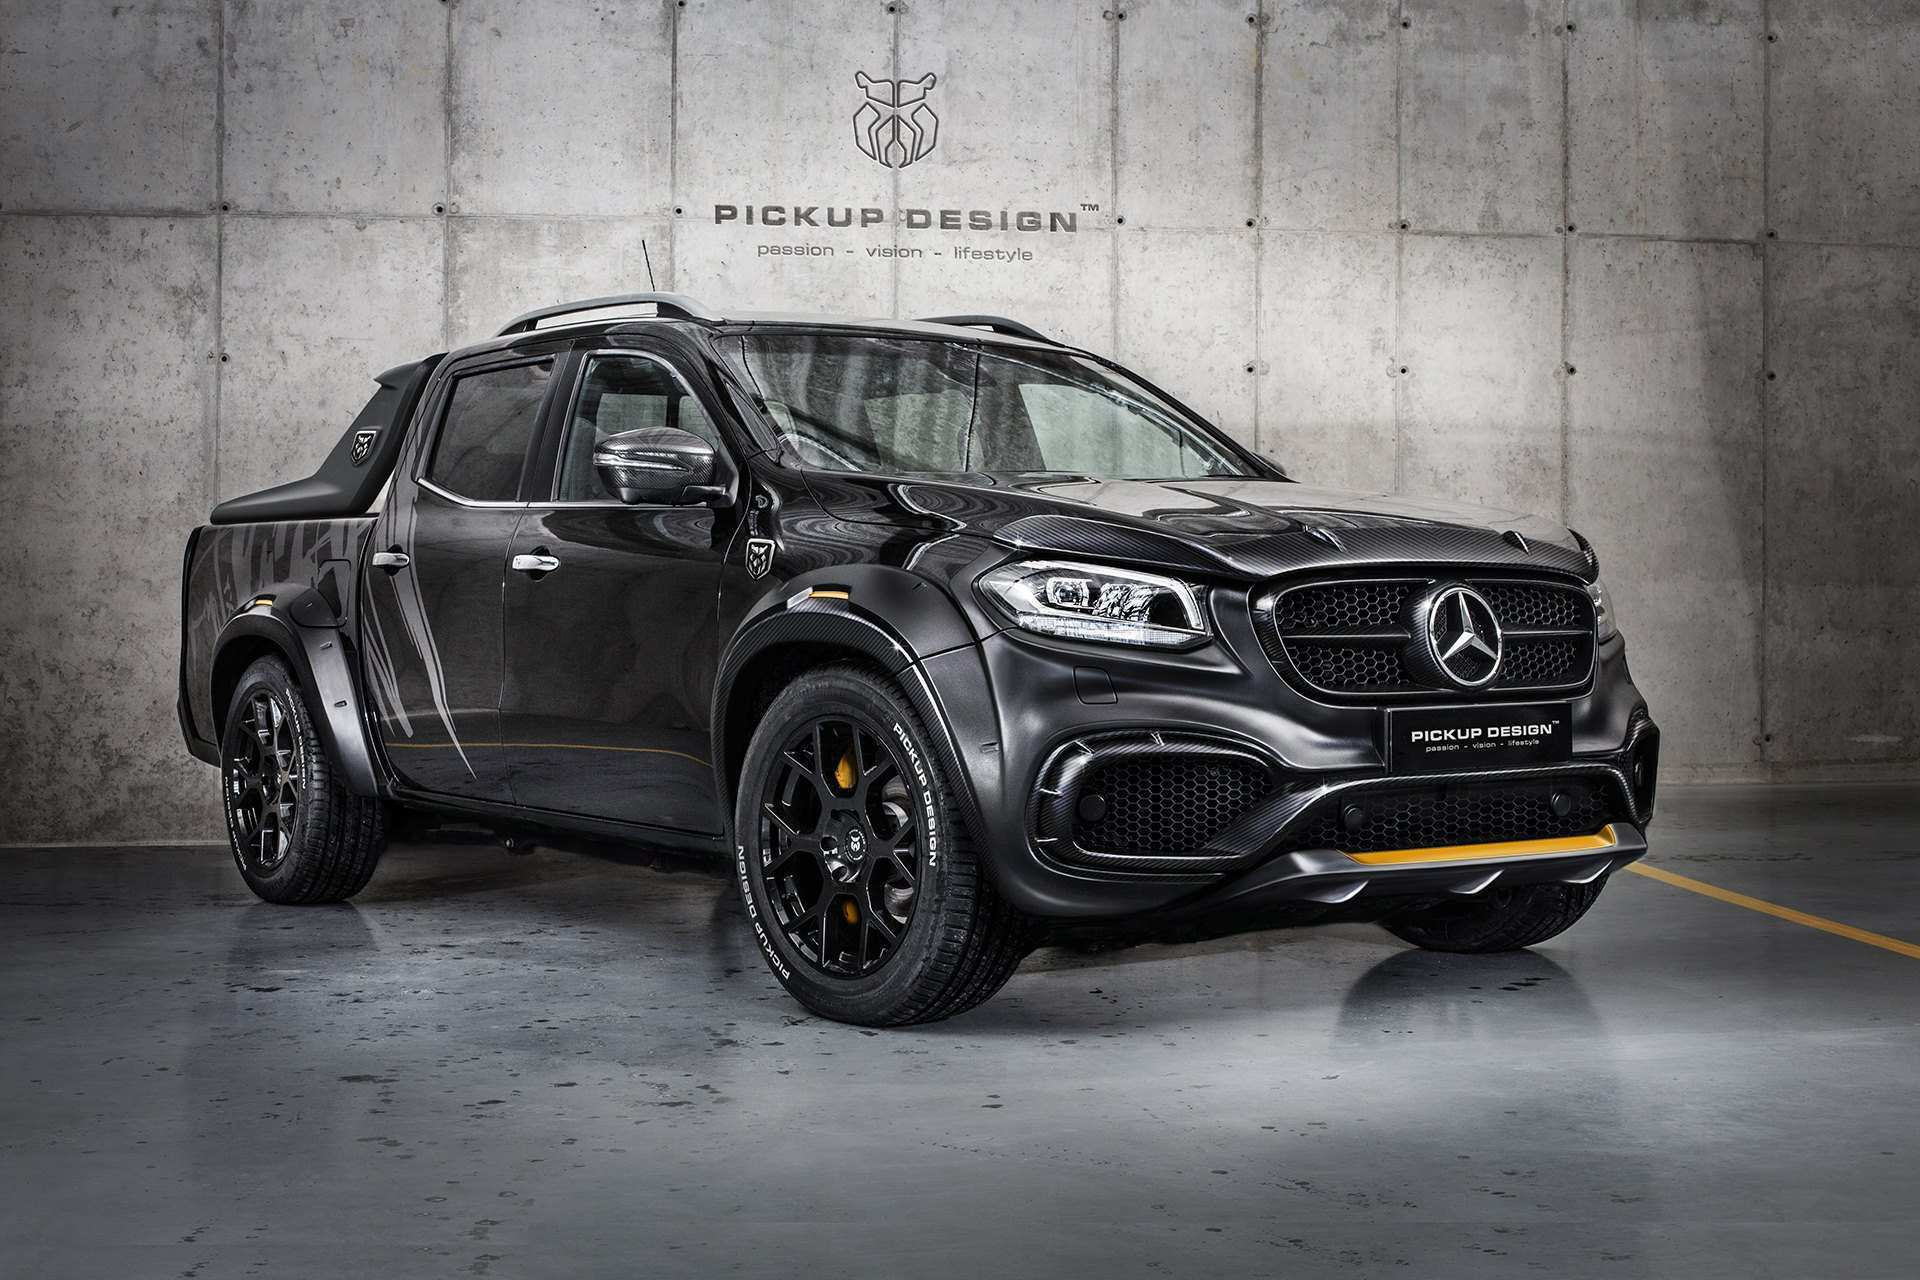 71 Concept of 2019 Mercedes Benz X Class Price and Review with 2019 Mercedes Benz X Class